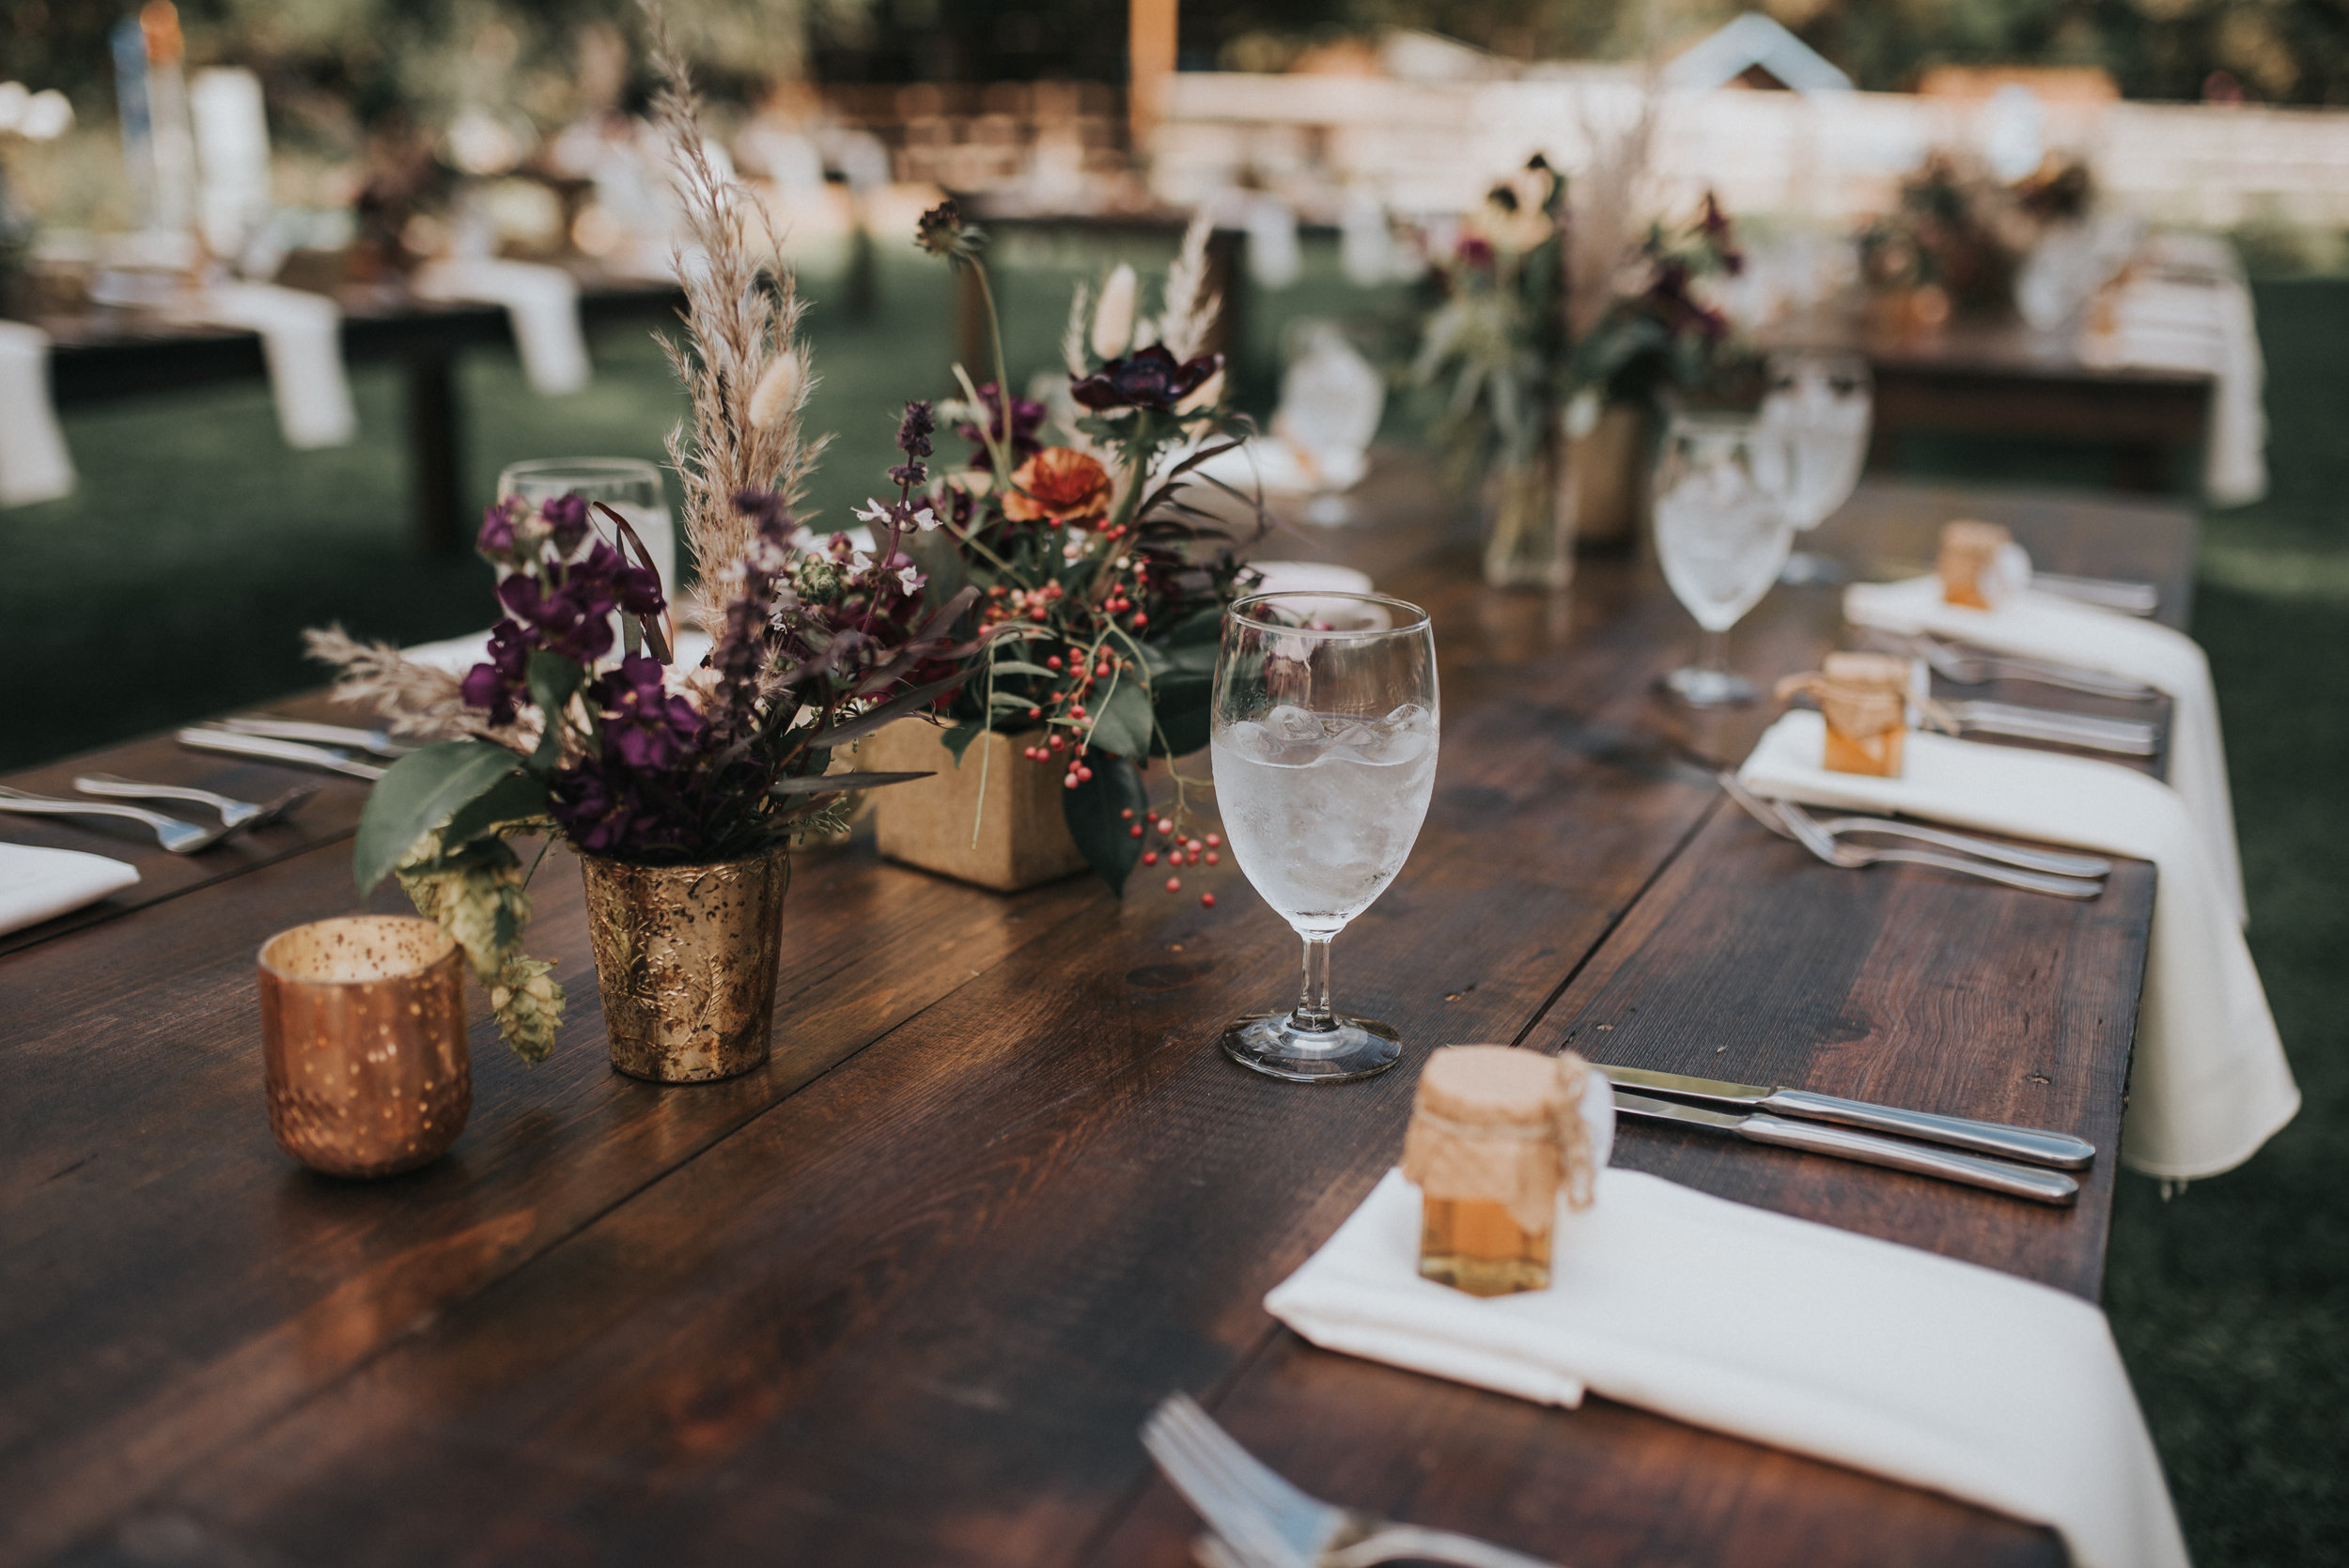 Flowers by Lace and Lilies, boutonniere, wedding flowers, jewel tones, pampas grass, hops, texture, colorado wedding, a-frame arch, arch flowers, altar flowers, ceremony flowers, moody toned wedding, pampas grass, bridal party, burgundy dresses, foliage bouquets